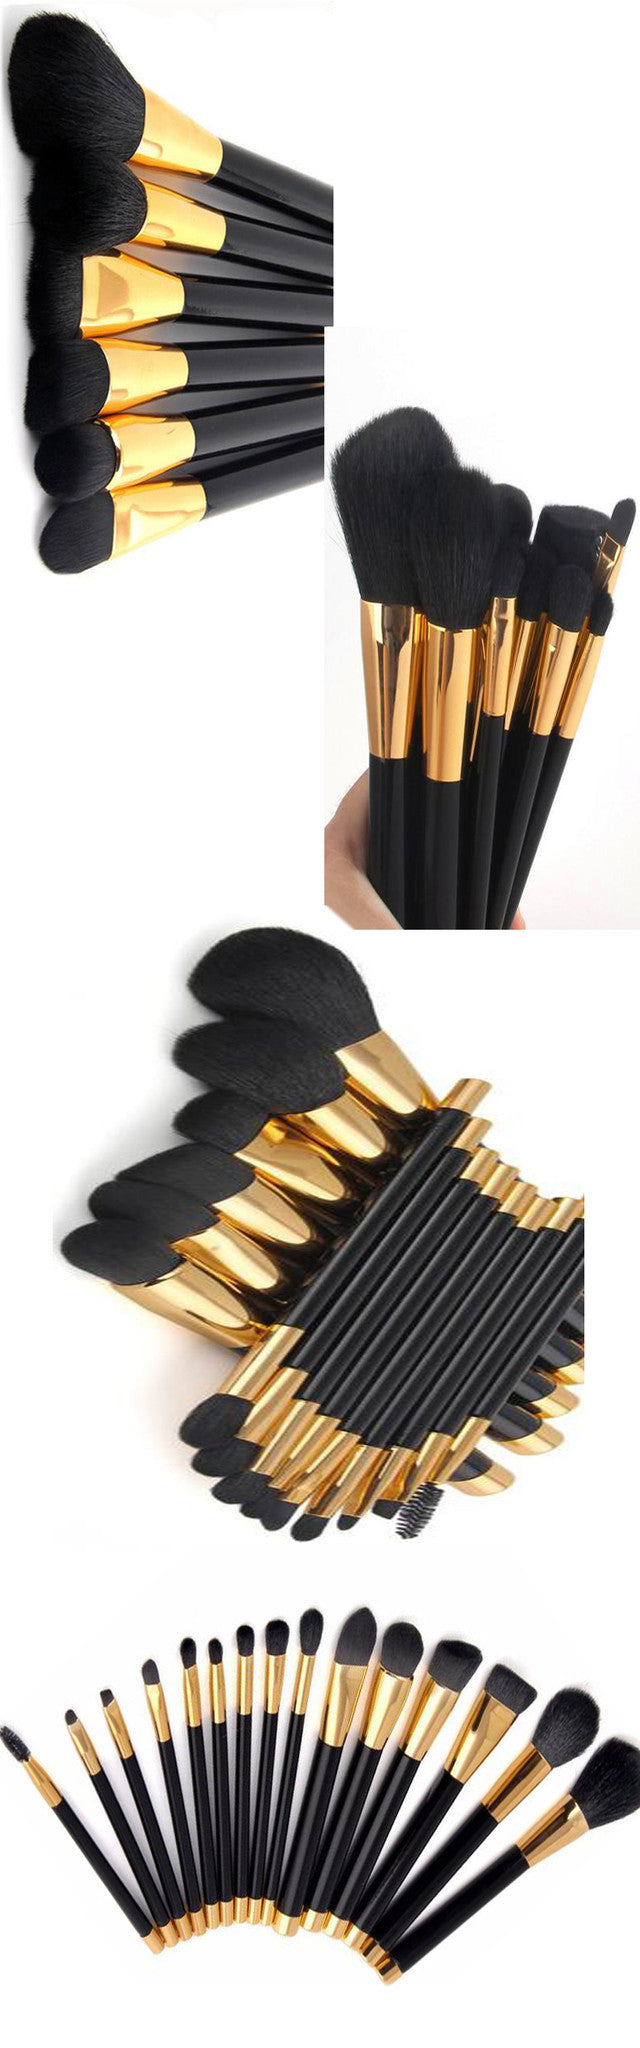 15 Piece Black And Gold Makeup Brush Set - girlyrose.com